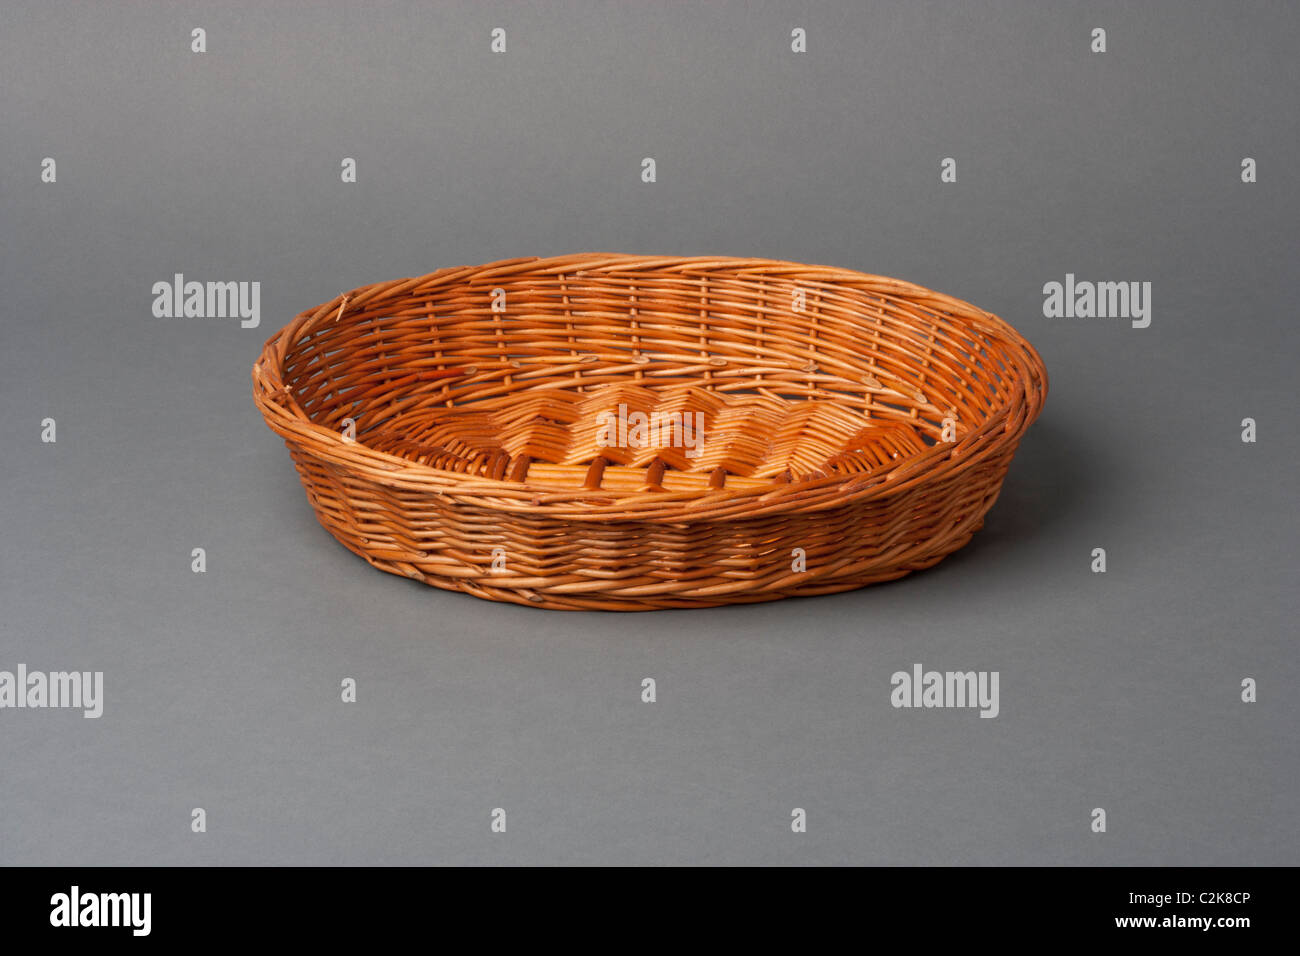 Bread basket on a grey background - Stock Image